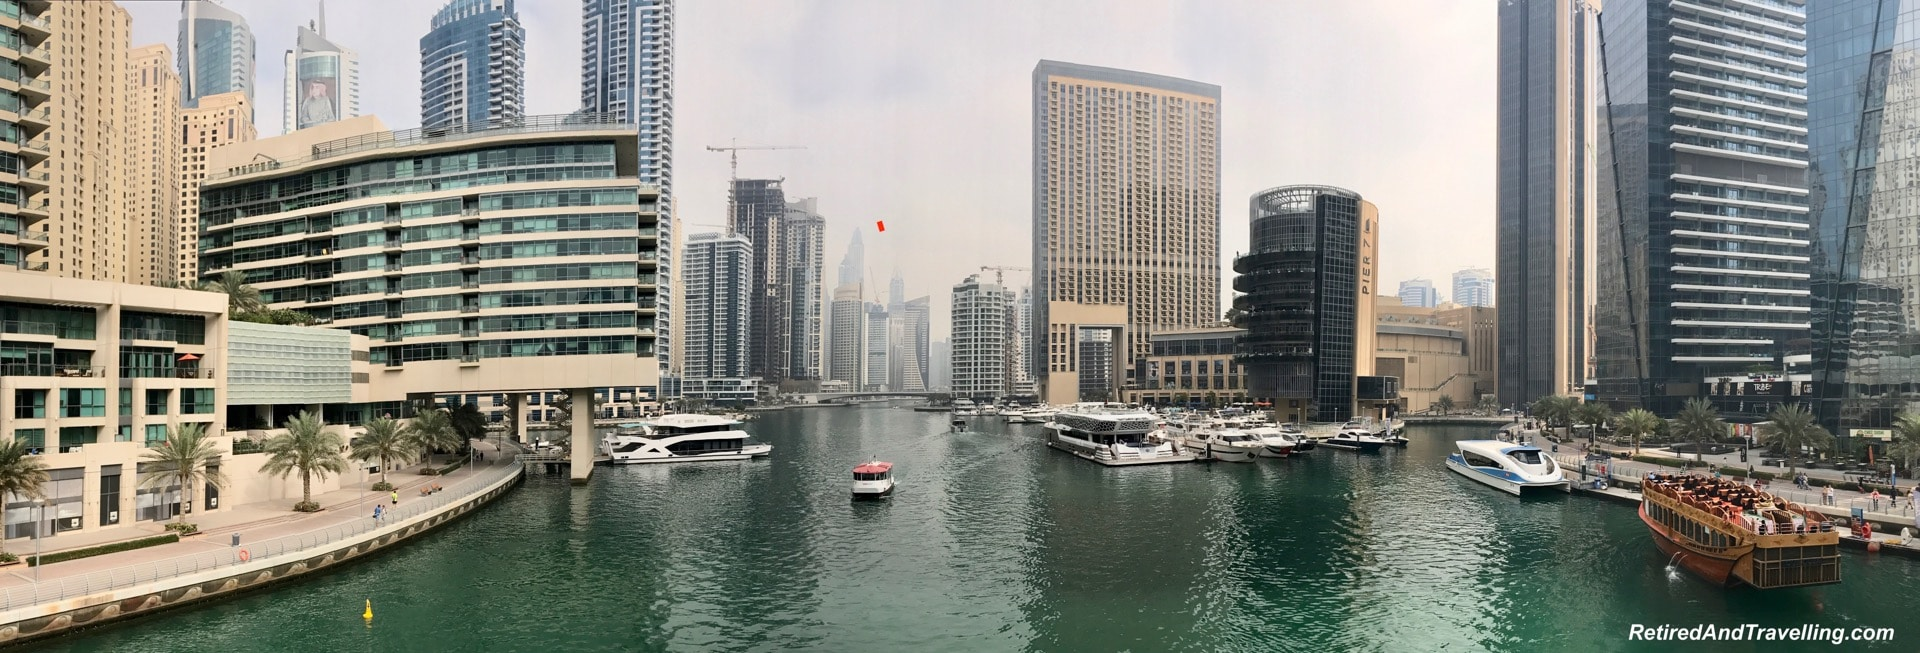 Canal Cruise Dubai Marina - Things To Do In Dubai.jpg